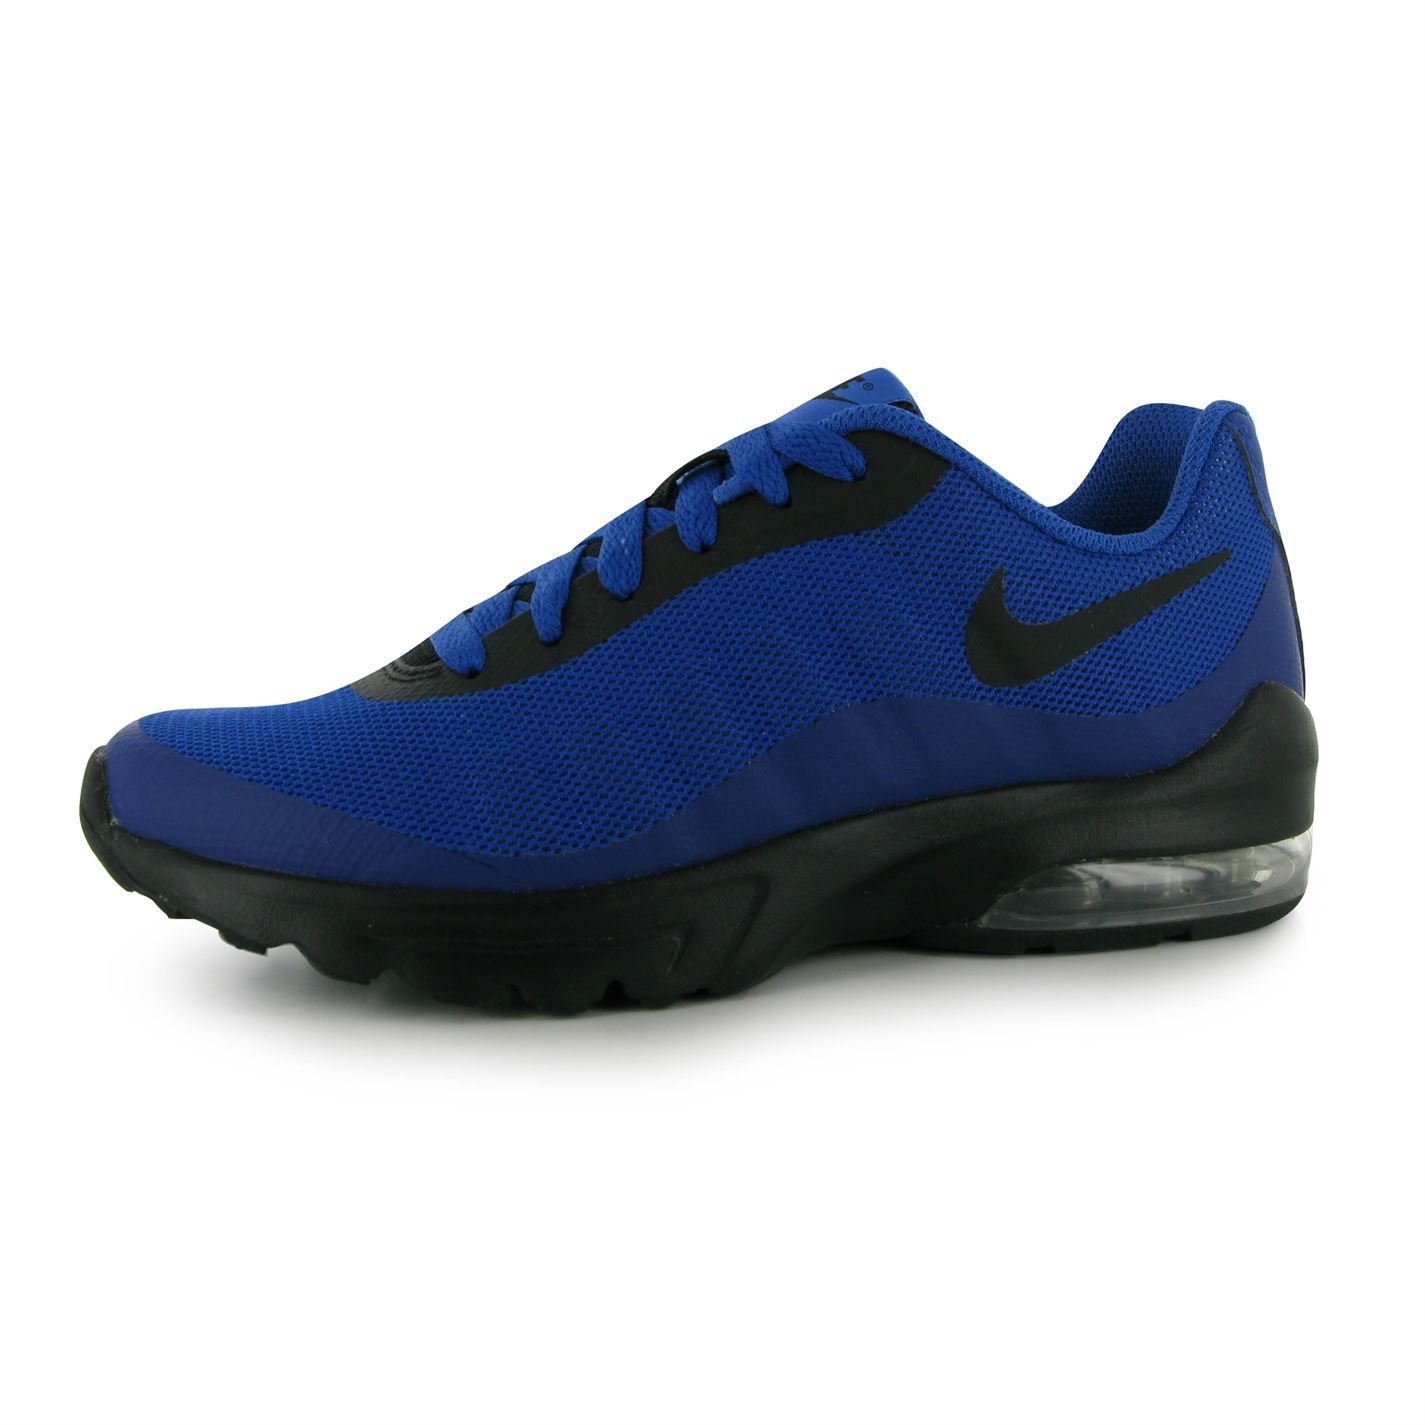 best website 1fcb2 400a5 Nike   Nike Air Max Invigor Trainers Junior Boys   Kids Trainers